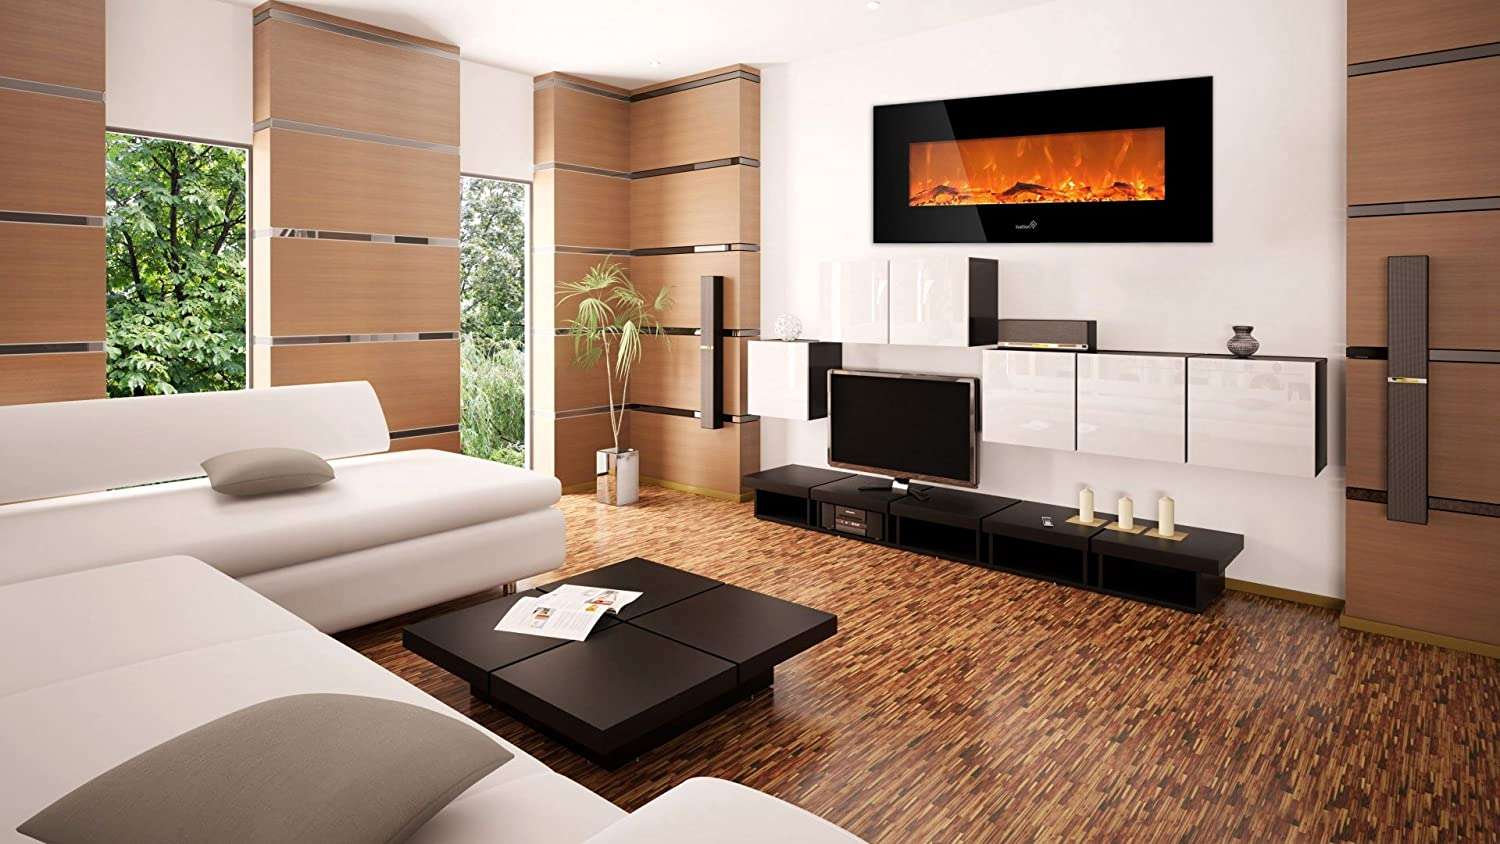 ivation 50 u201d wall mounted electric fireplace with built in 1500